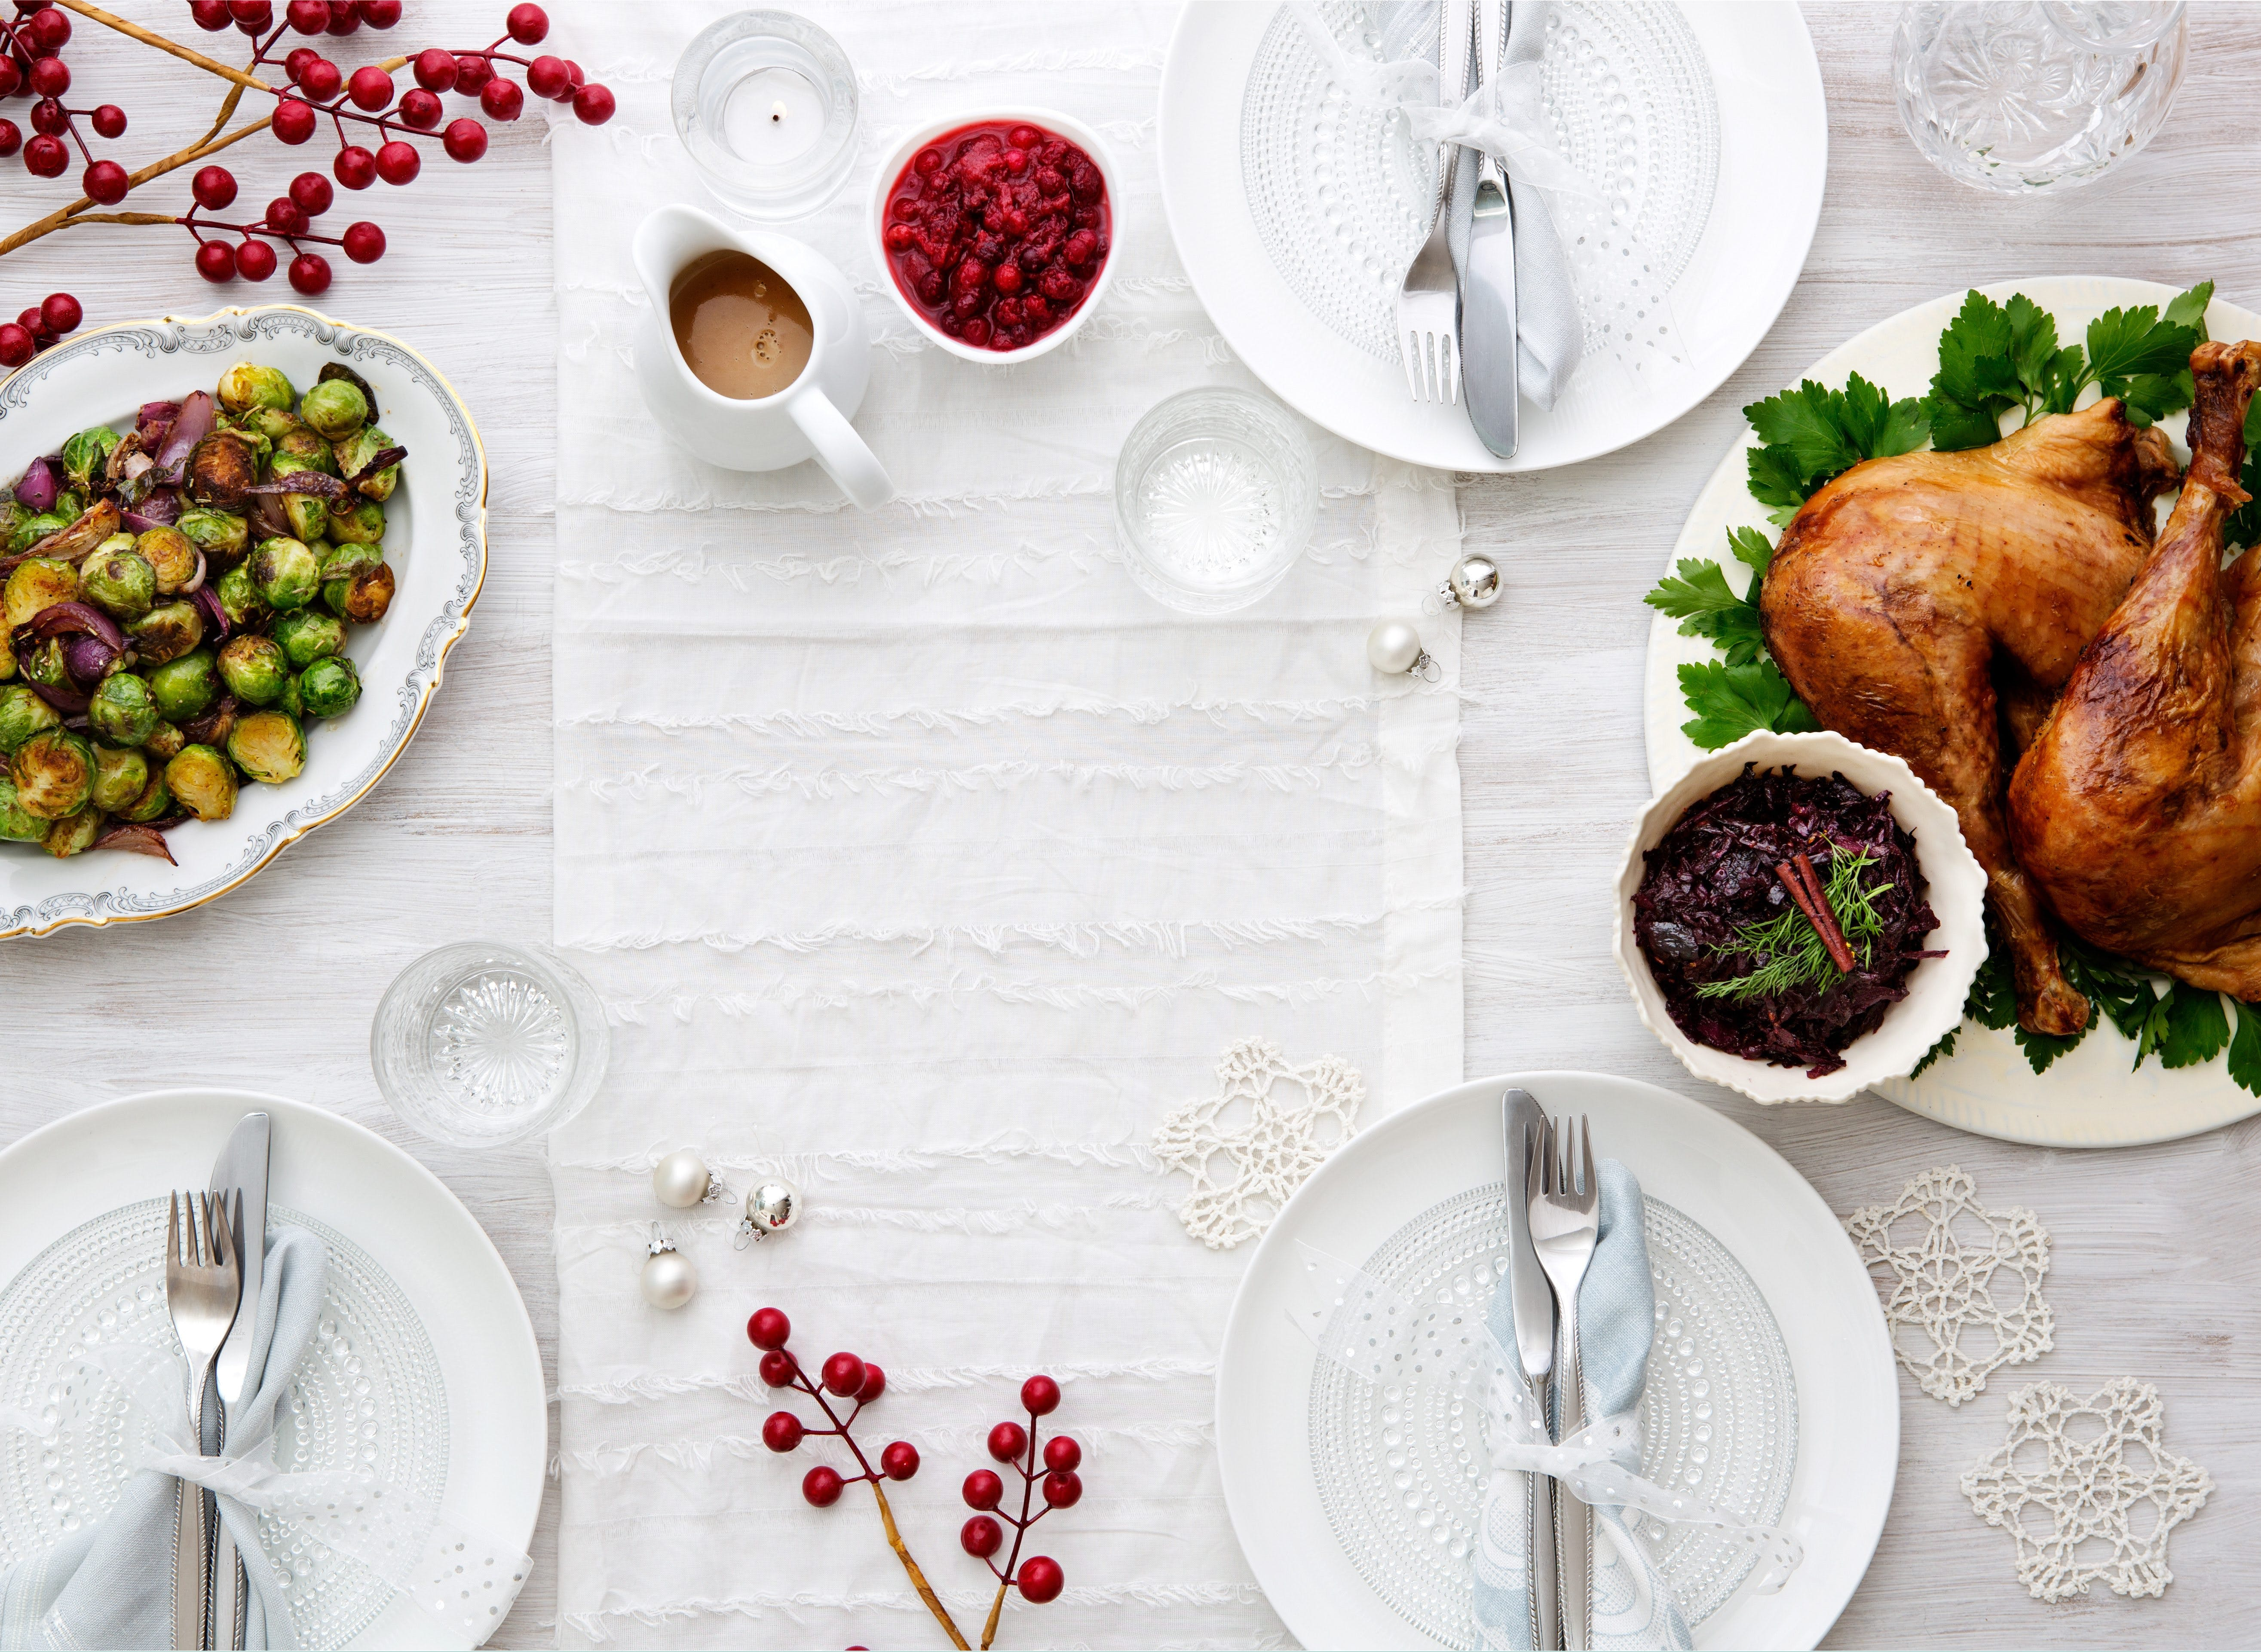 Happy low-carb and keto holidays!